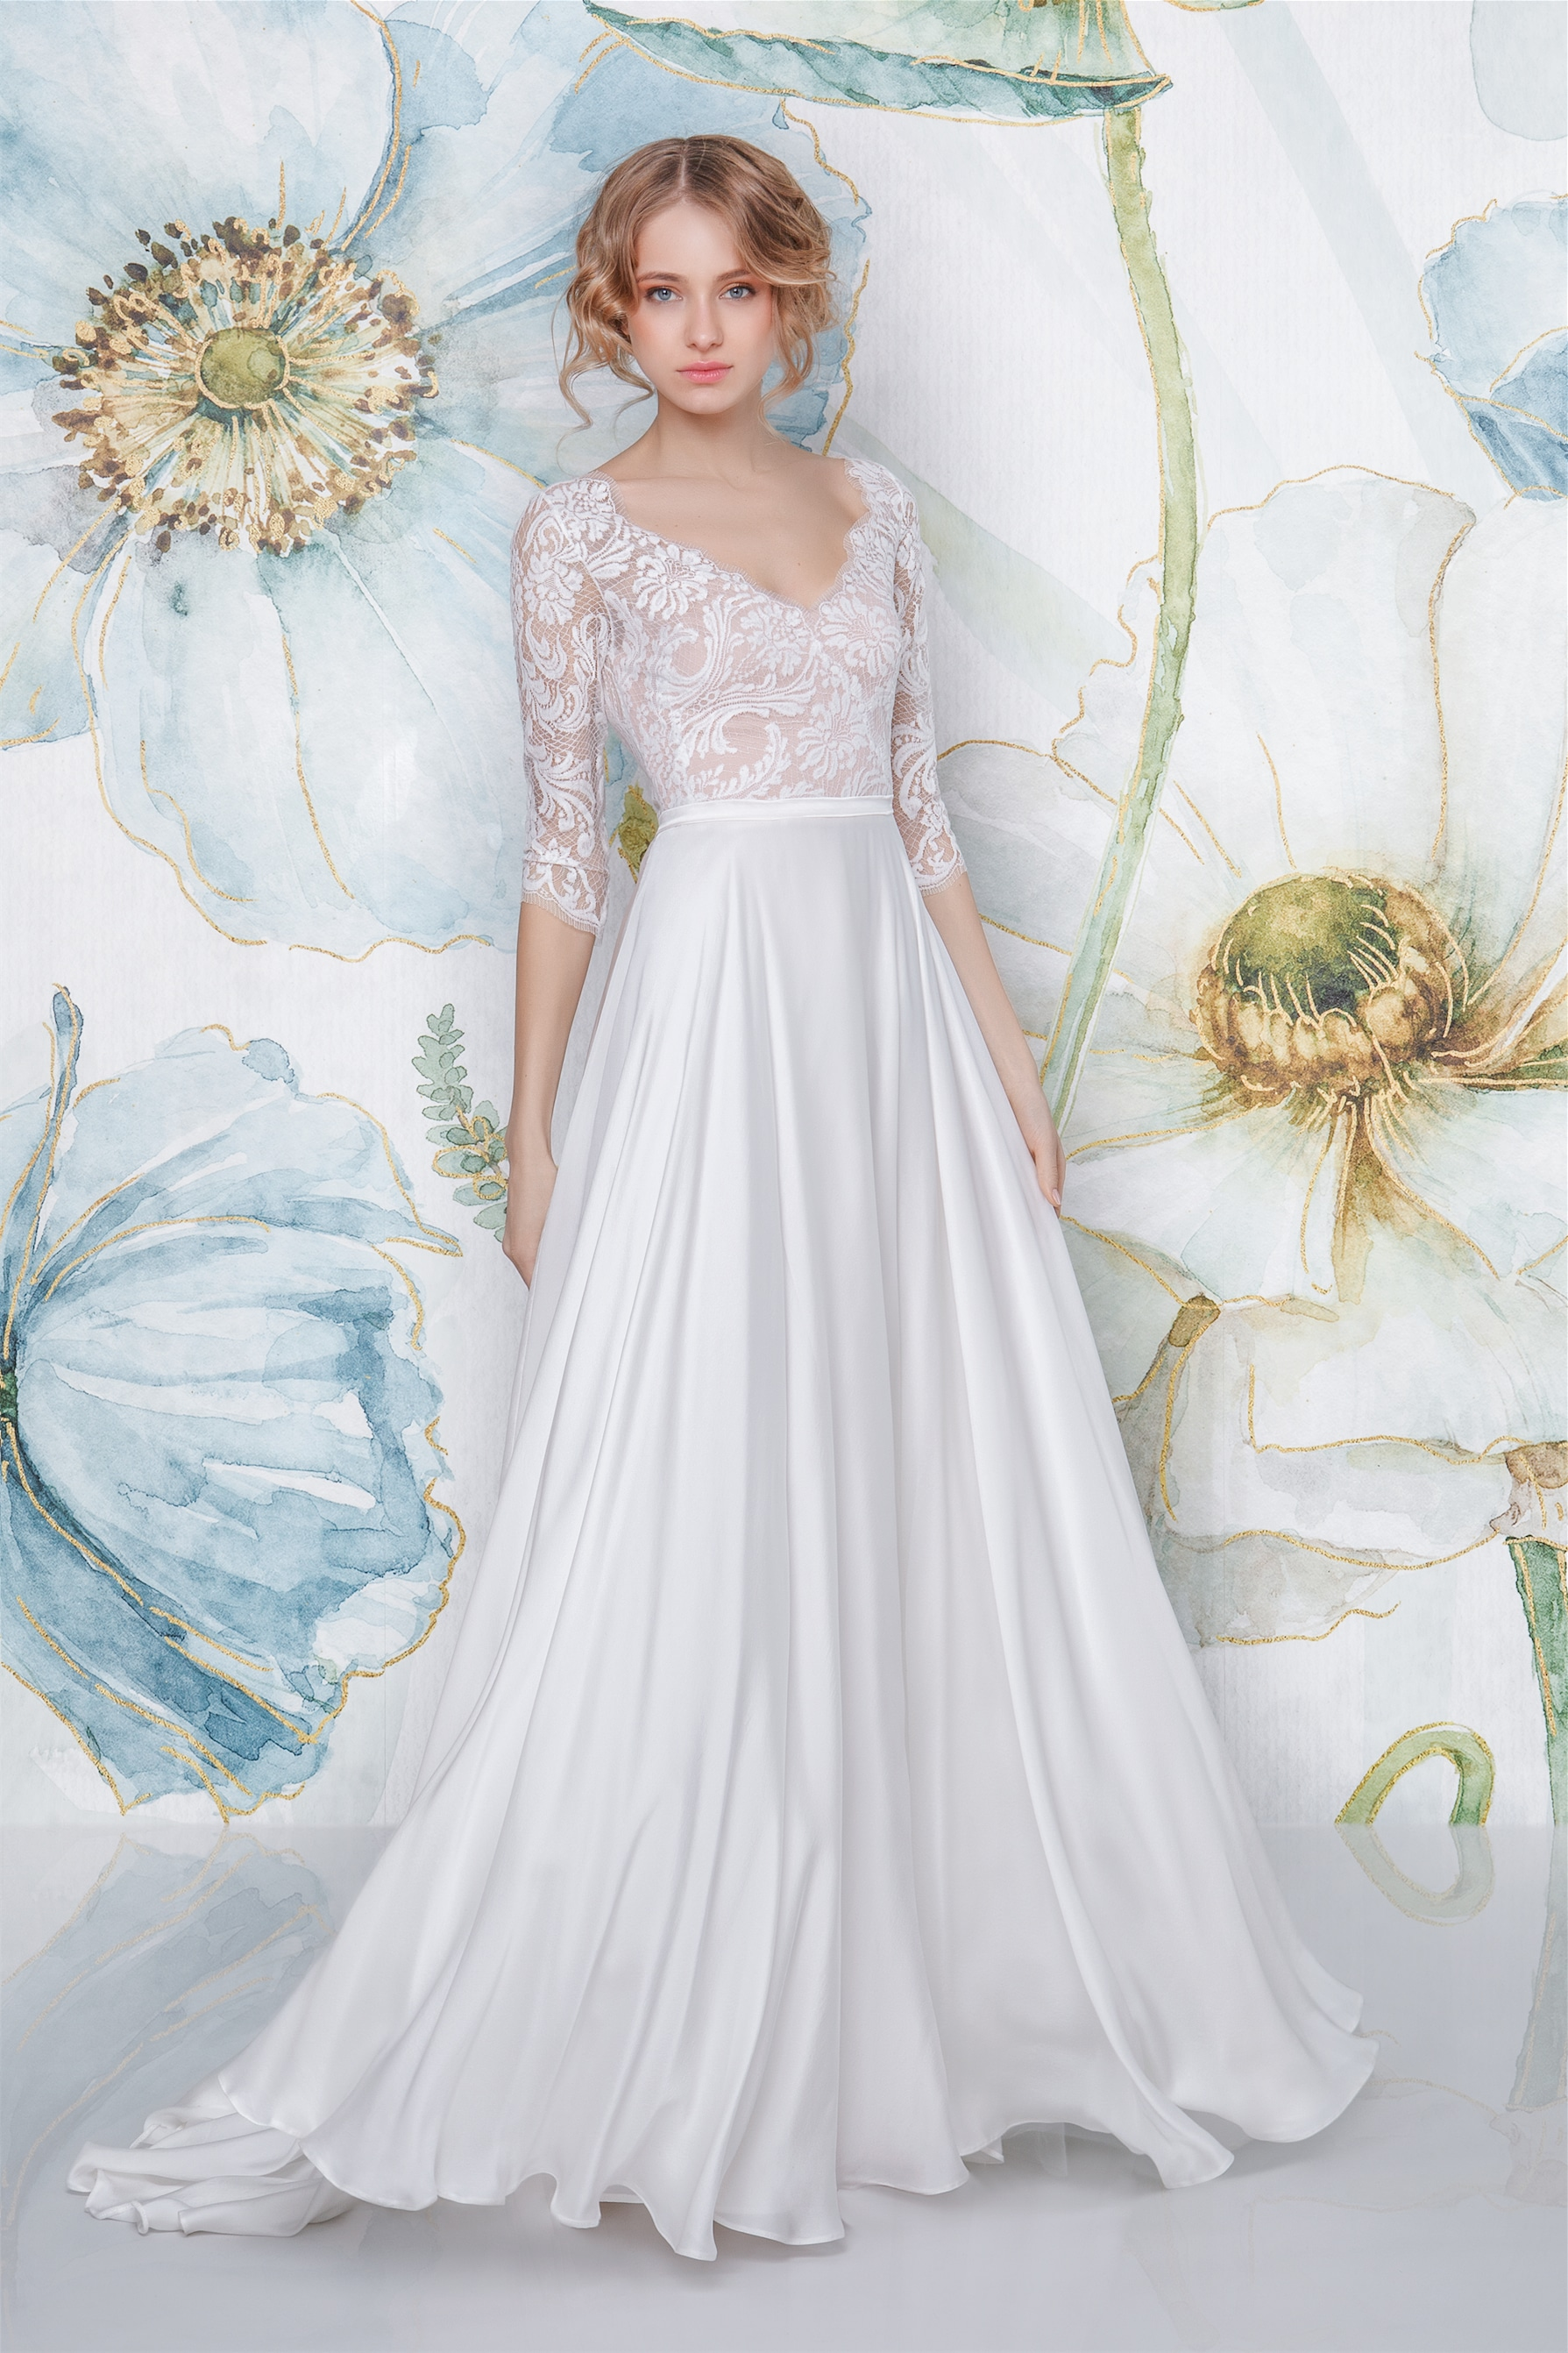 Homepage - Le dressing des mariees